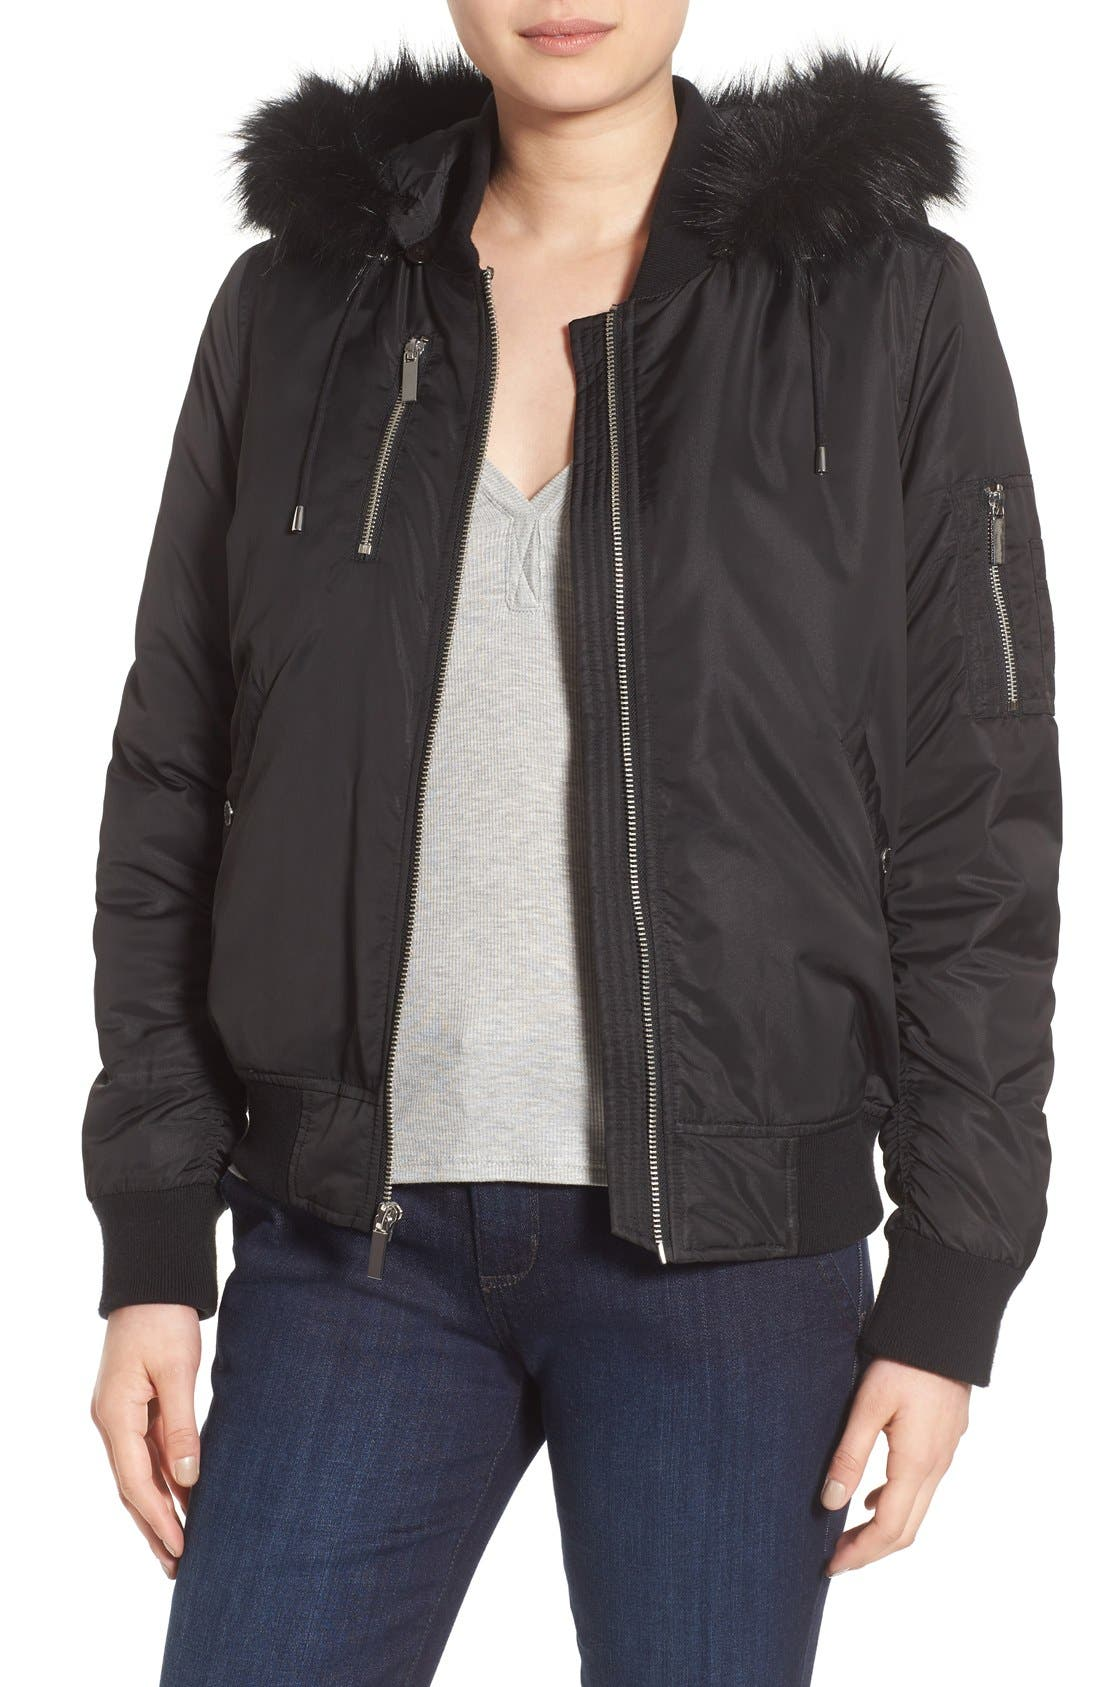 'Varsity' Hooded Bomber Jacket with Faux Fur Trim,                         Main,                         color, Black